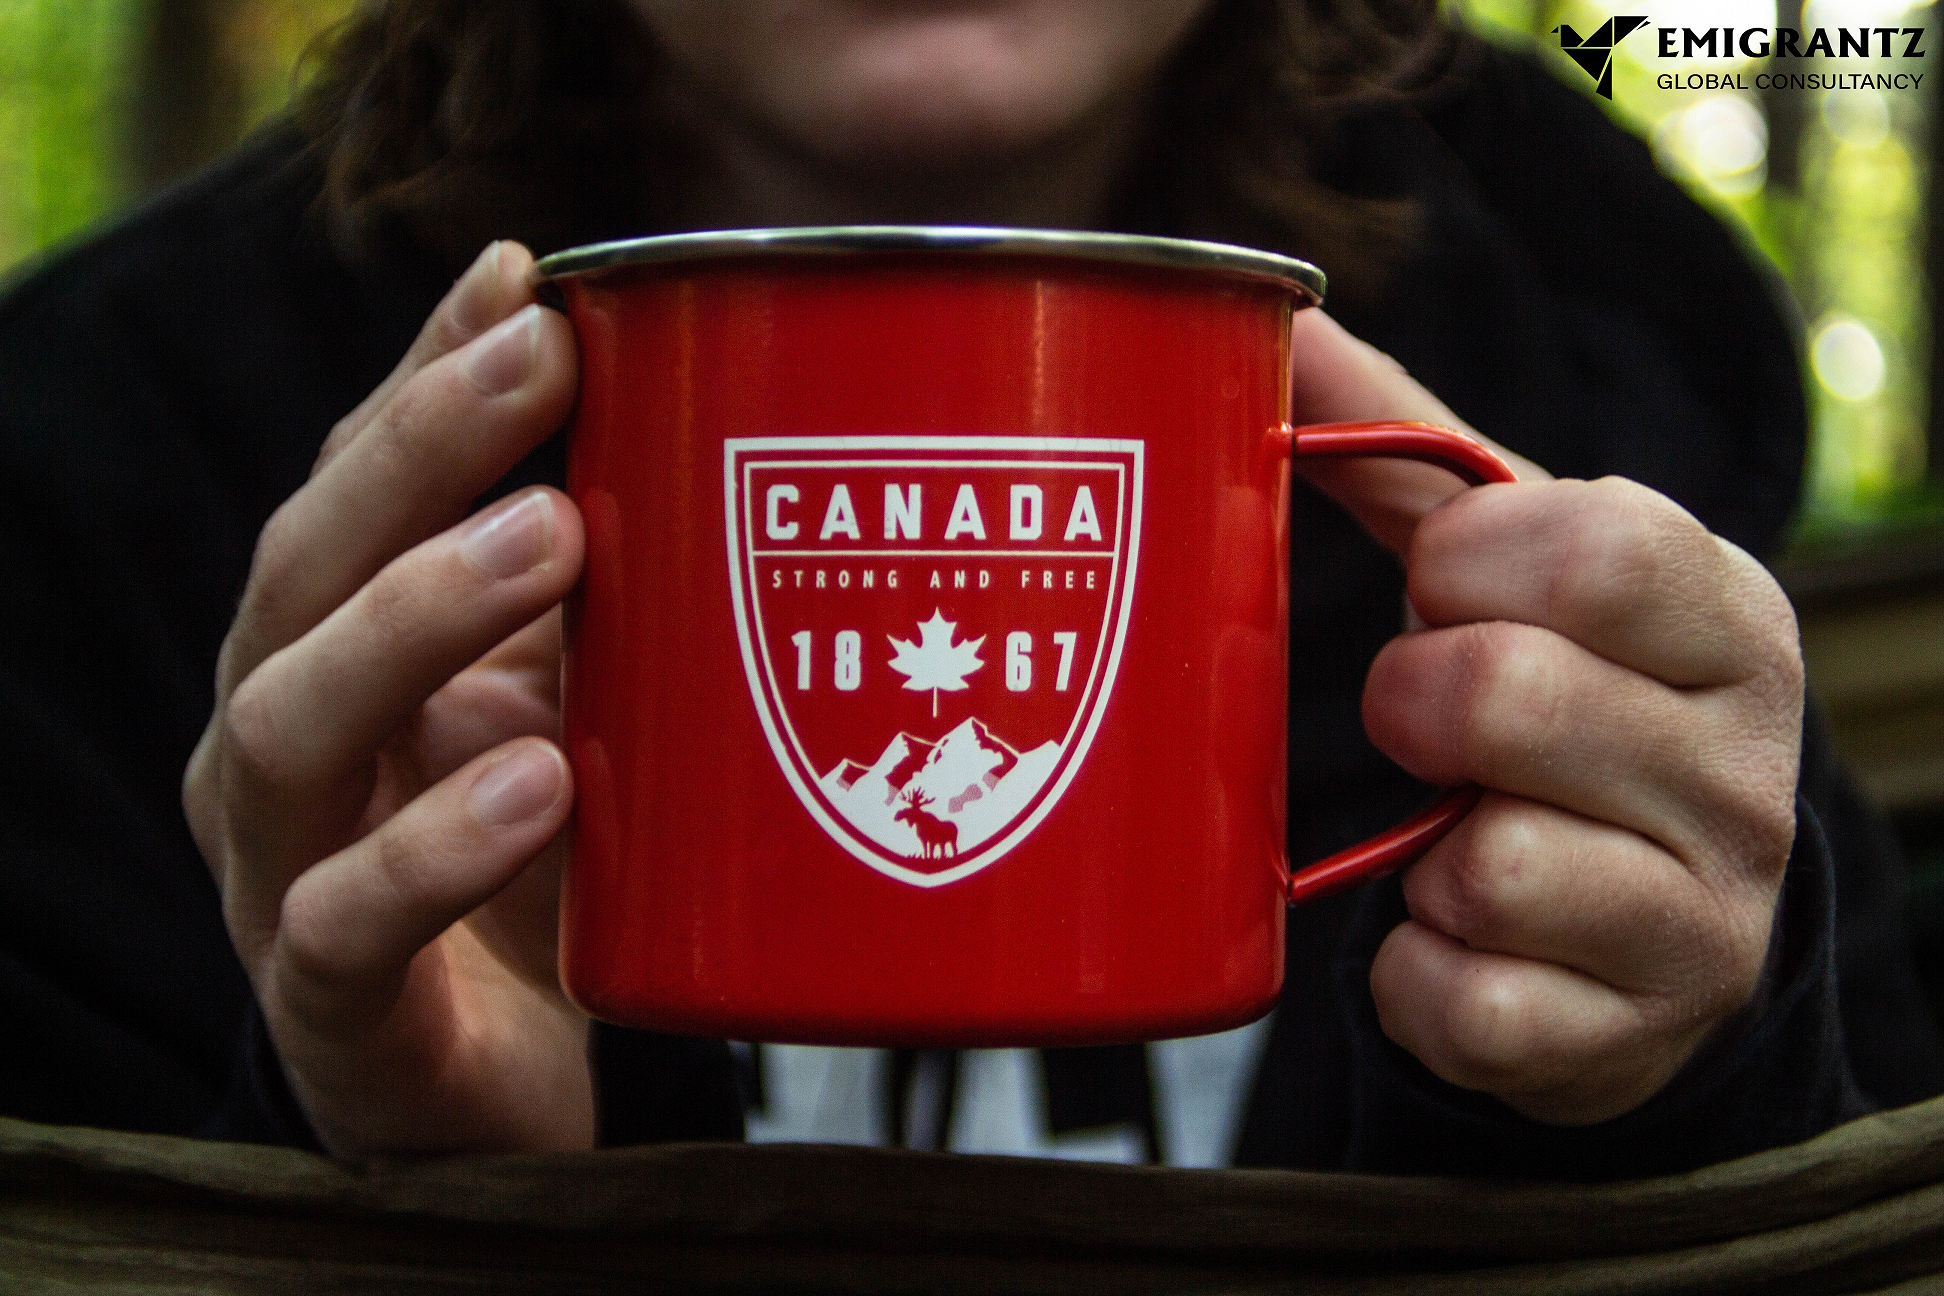 Person holding Canada labelled coffee mug